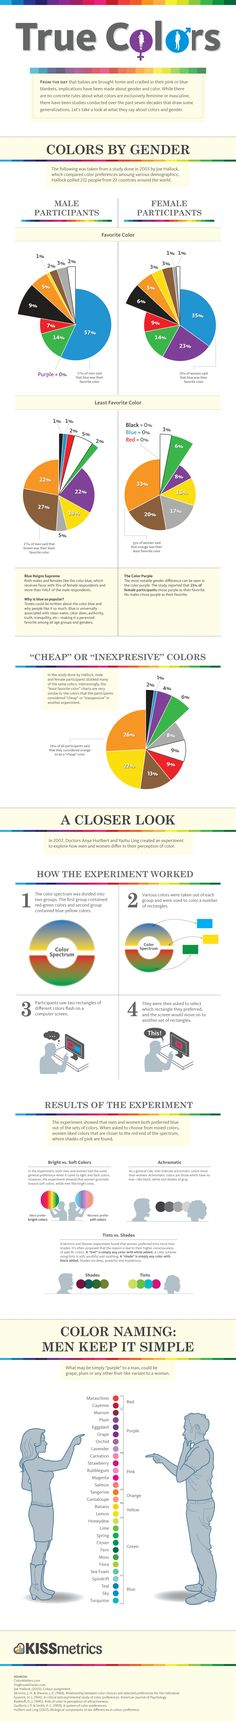 True Colors Infographic - Breakdown of Color Preferences by Gender - via http://bit.ly/epinner